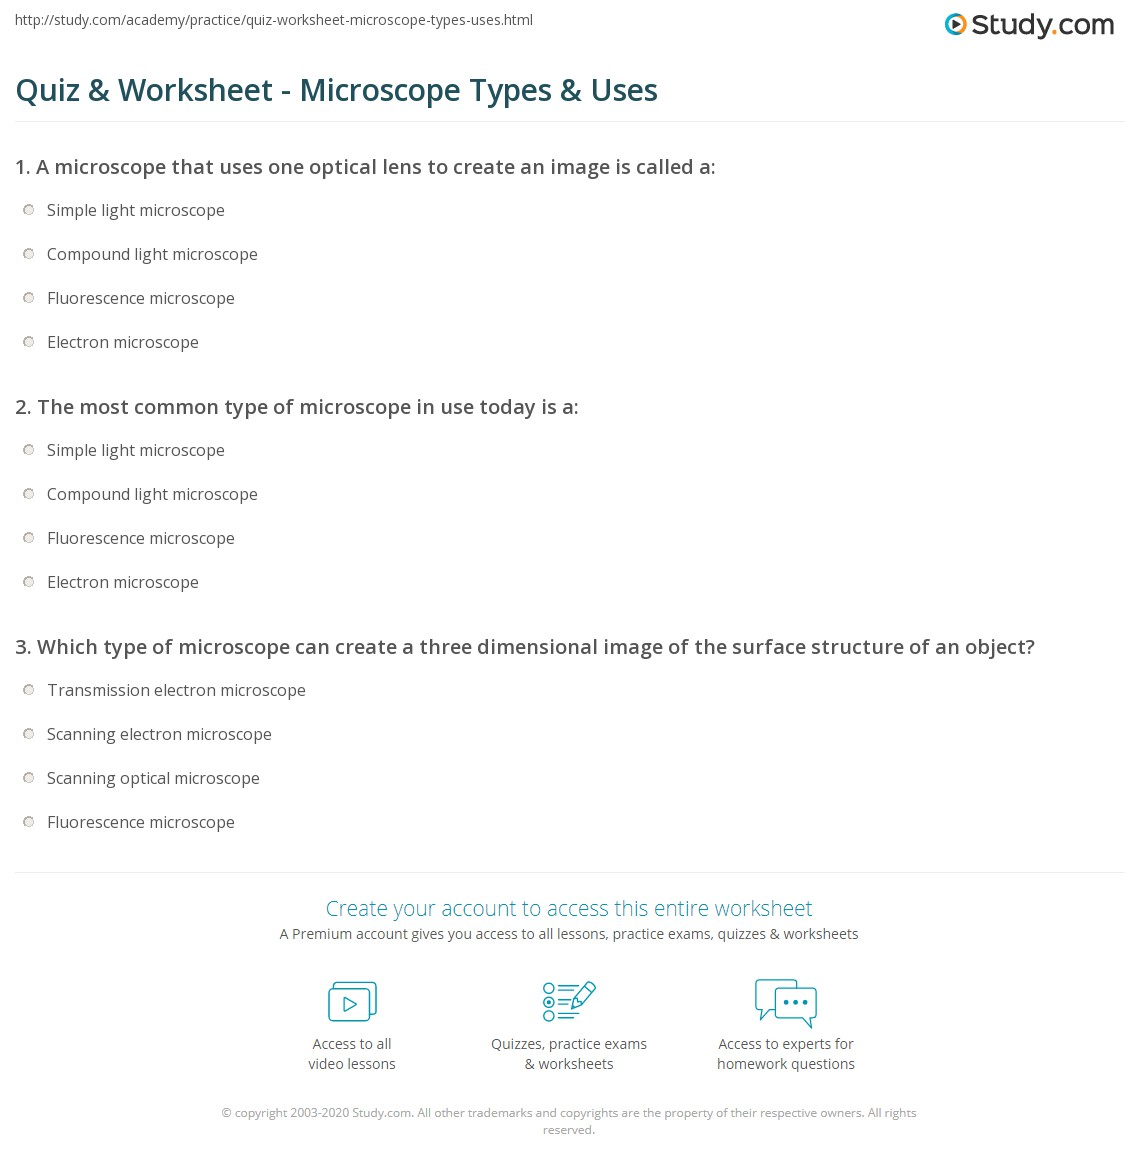 Quiz Worksheet Microscope Types Uses – Microscope Quiz Worksheet